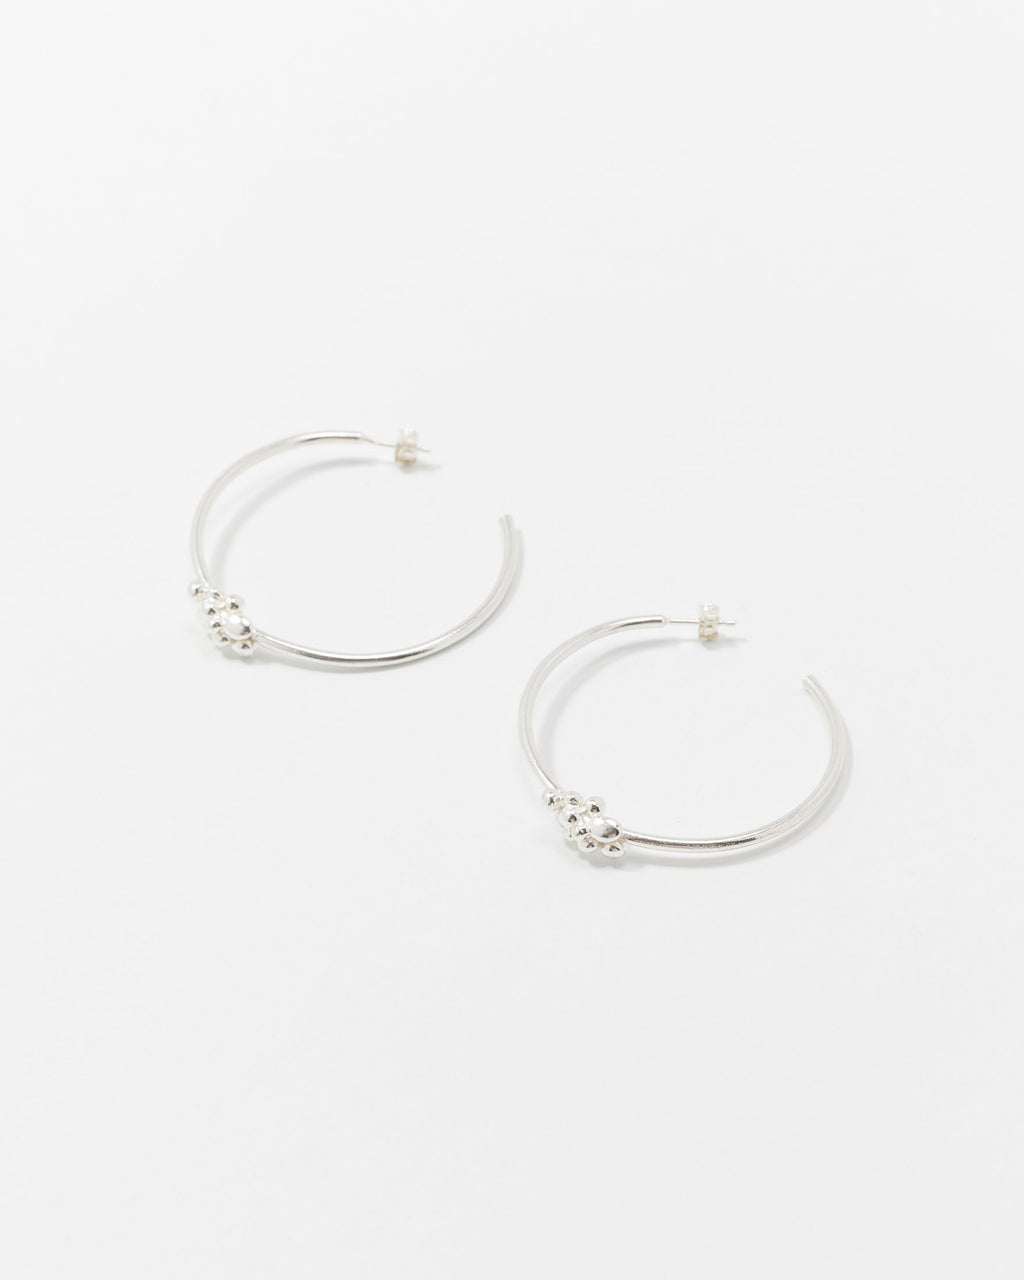 variant_1 | EN Silver Earrings Hoops Handmade Women Wildfawn | DE Silberne Ohrringe Creolen Handgemacht Damen Wildfawn